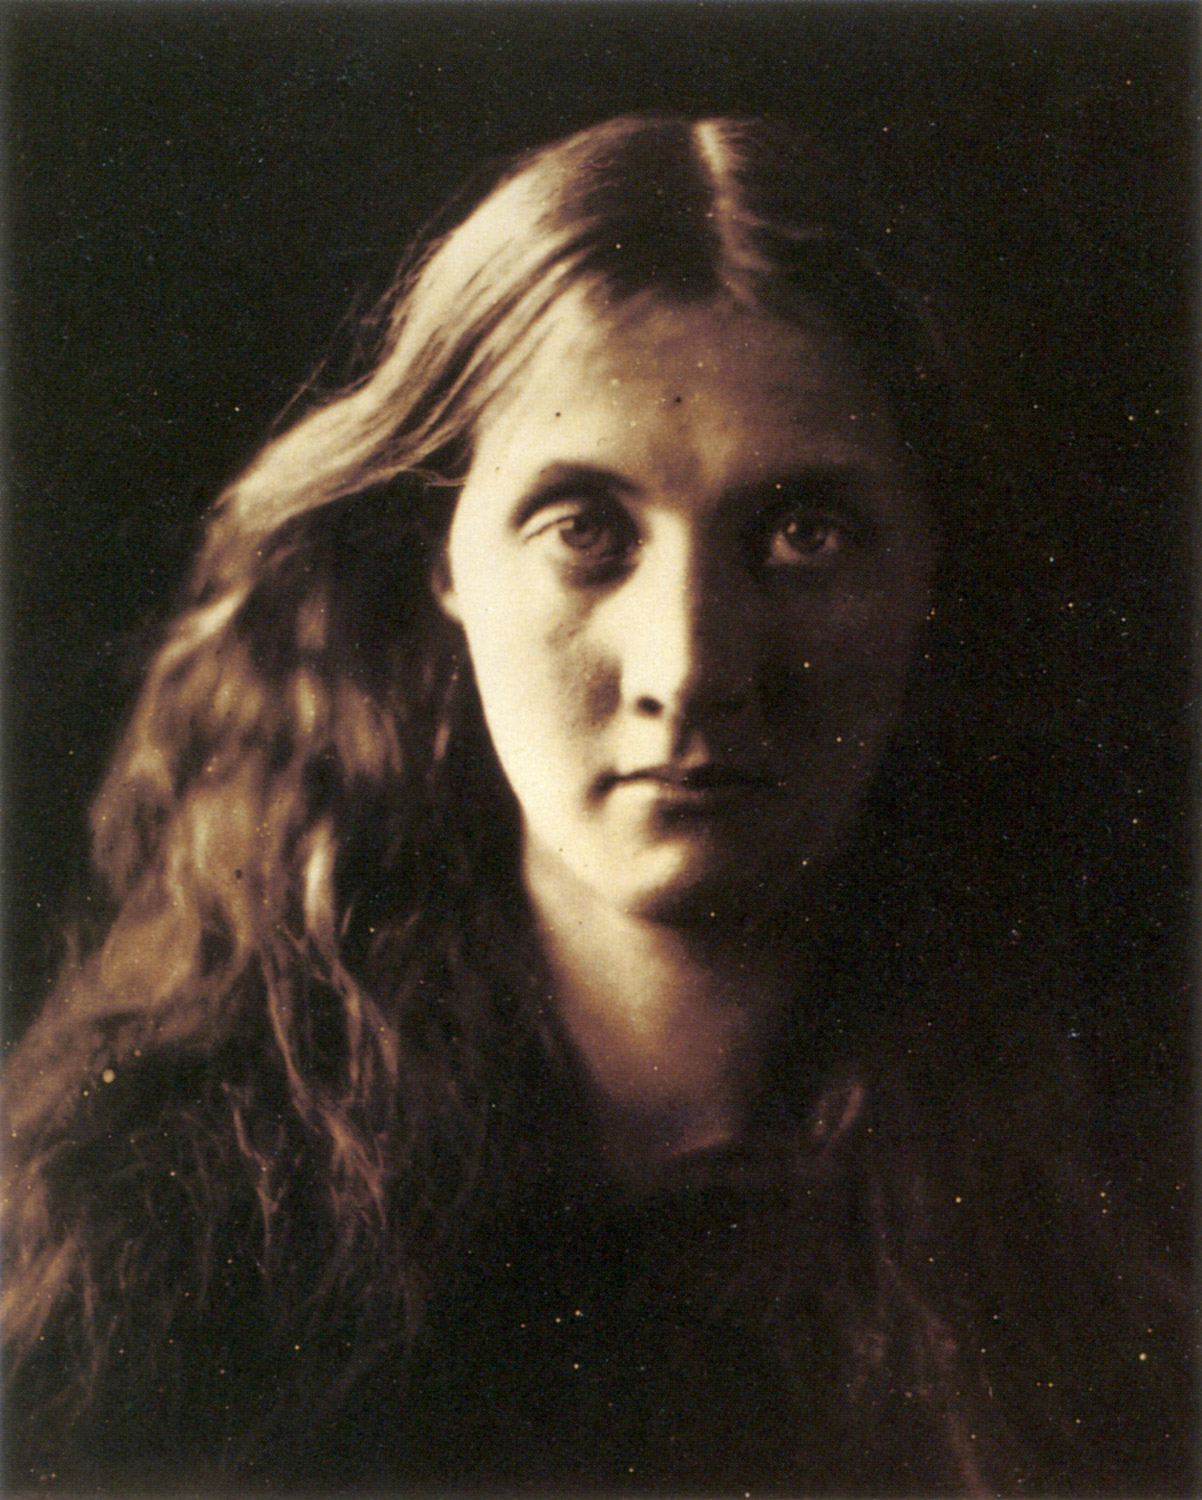 Image: A portrait by Julia Margaret Cameron. Image courtesy of Wikimedia